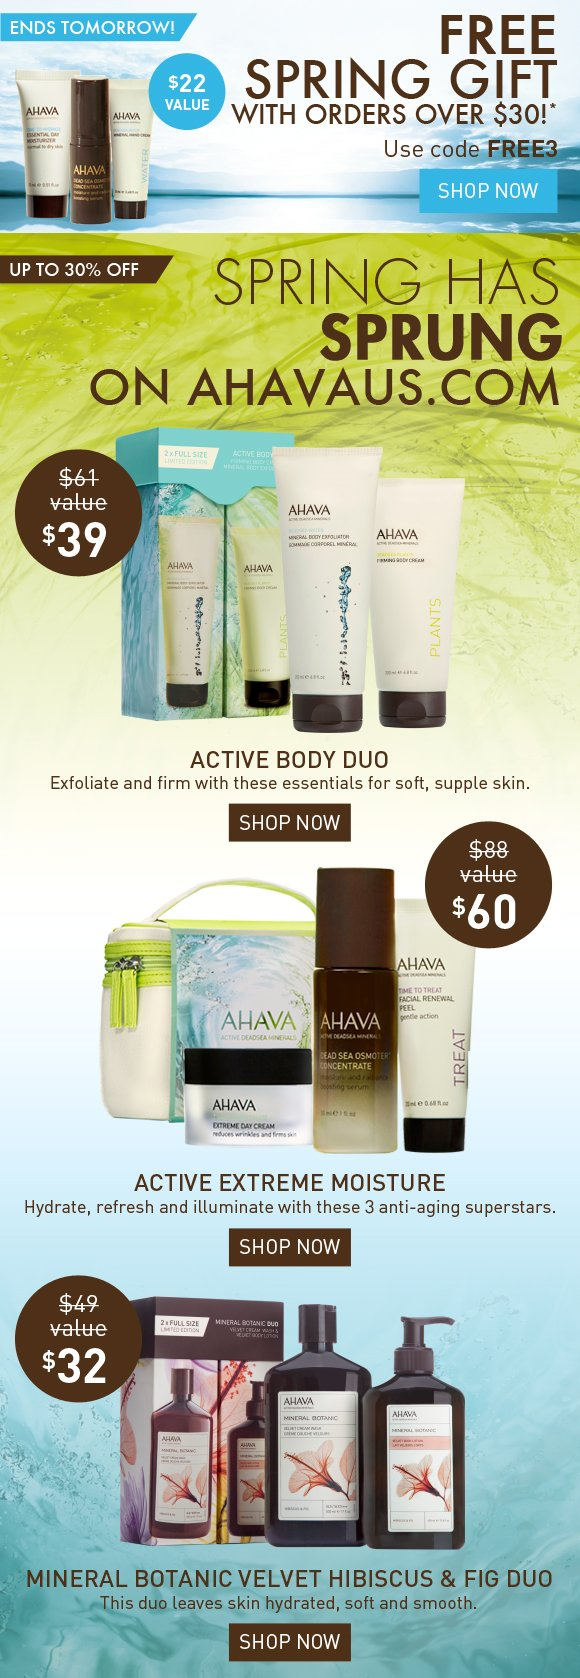 FREE Spring Gift with orders over $30!* ENDS TOMORROW! Use code FREE3 Shop Now Spring has sprung on ahavaus.com up to 30% Off Active Body Duo Exfoliate and firm with these essentials for soft, supple skin. Shop Now Active Extreme Moisture Hydrate, refresh and illuminate with these 3 anti-aging superstars. Shop Now Mineral Botanic Hibiscus & Fig Duo This duo leaves skin hydrated, soft and smooth. Shop Now